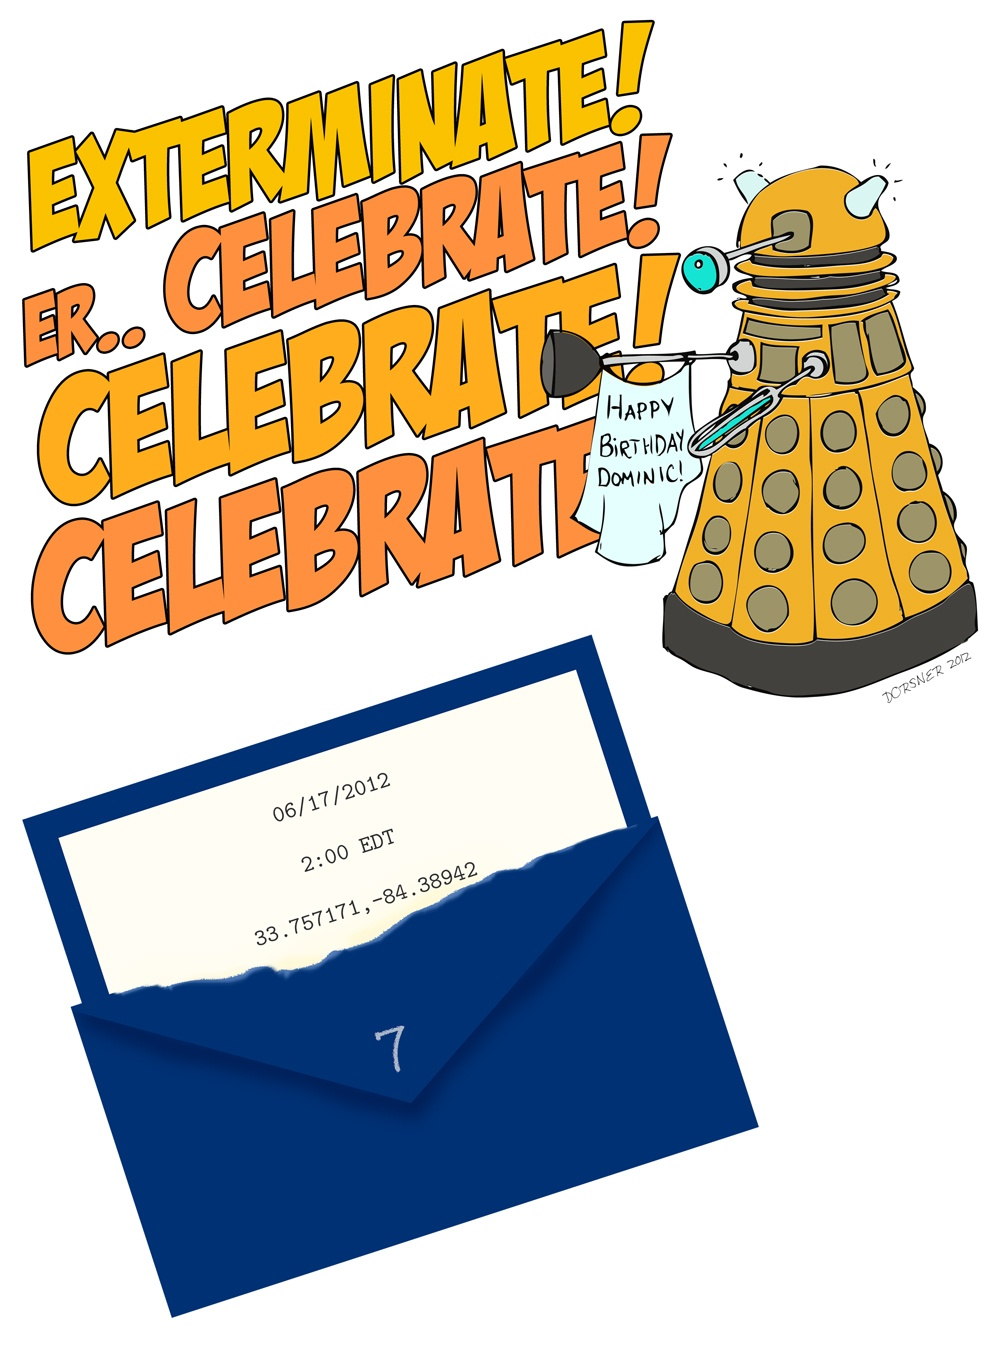 Dr. Who Birthday Party Invitation (Downloadable Template, Too - Doctor Who Party Invitations Printable Free